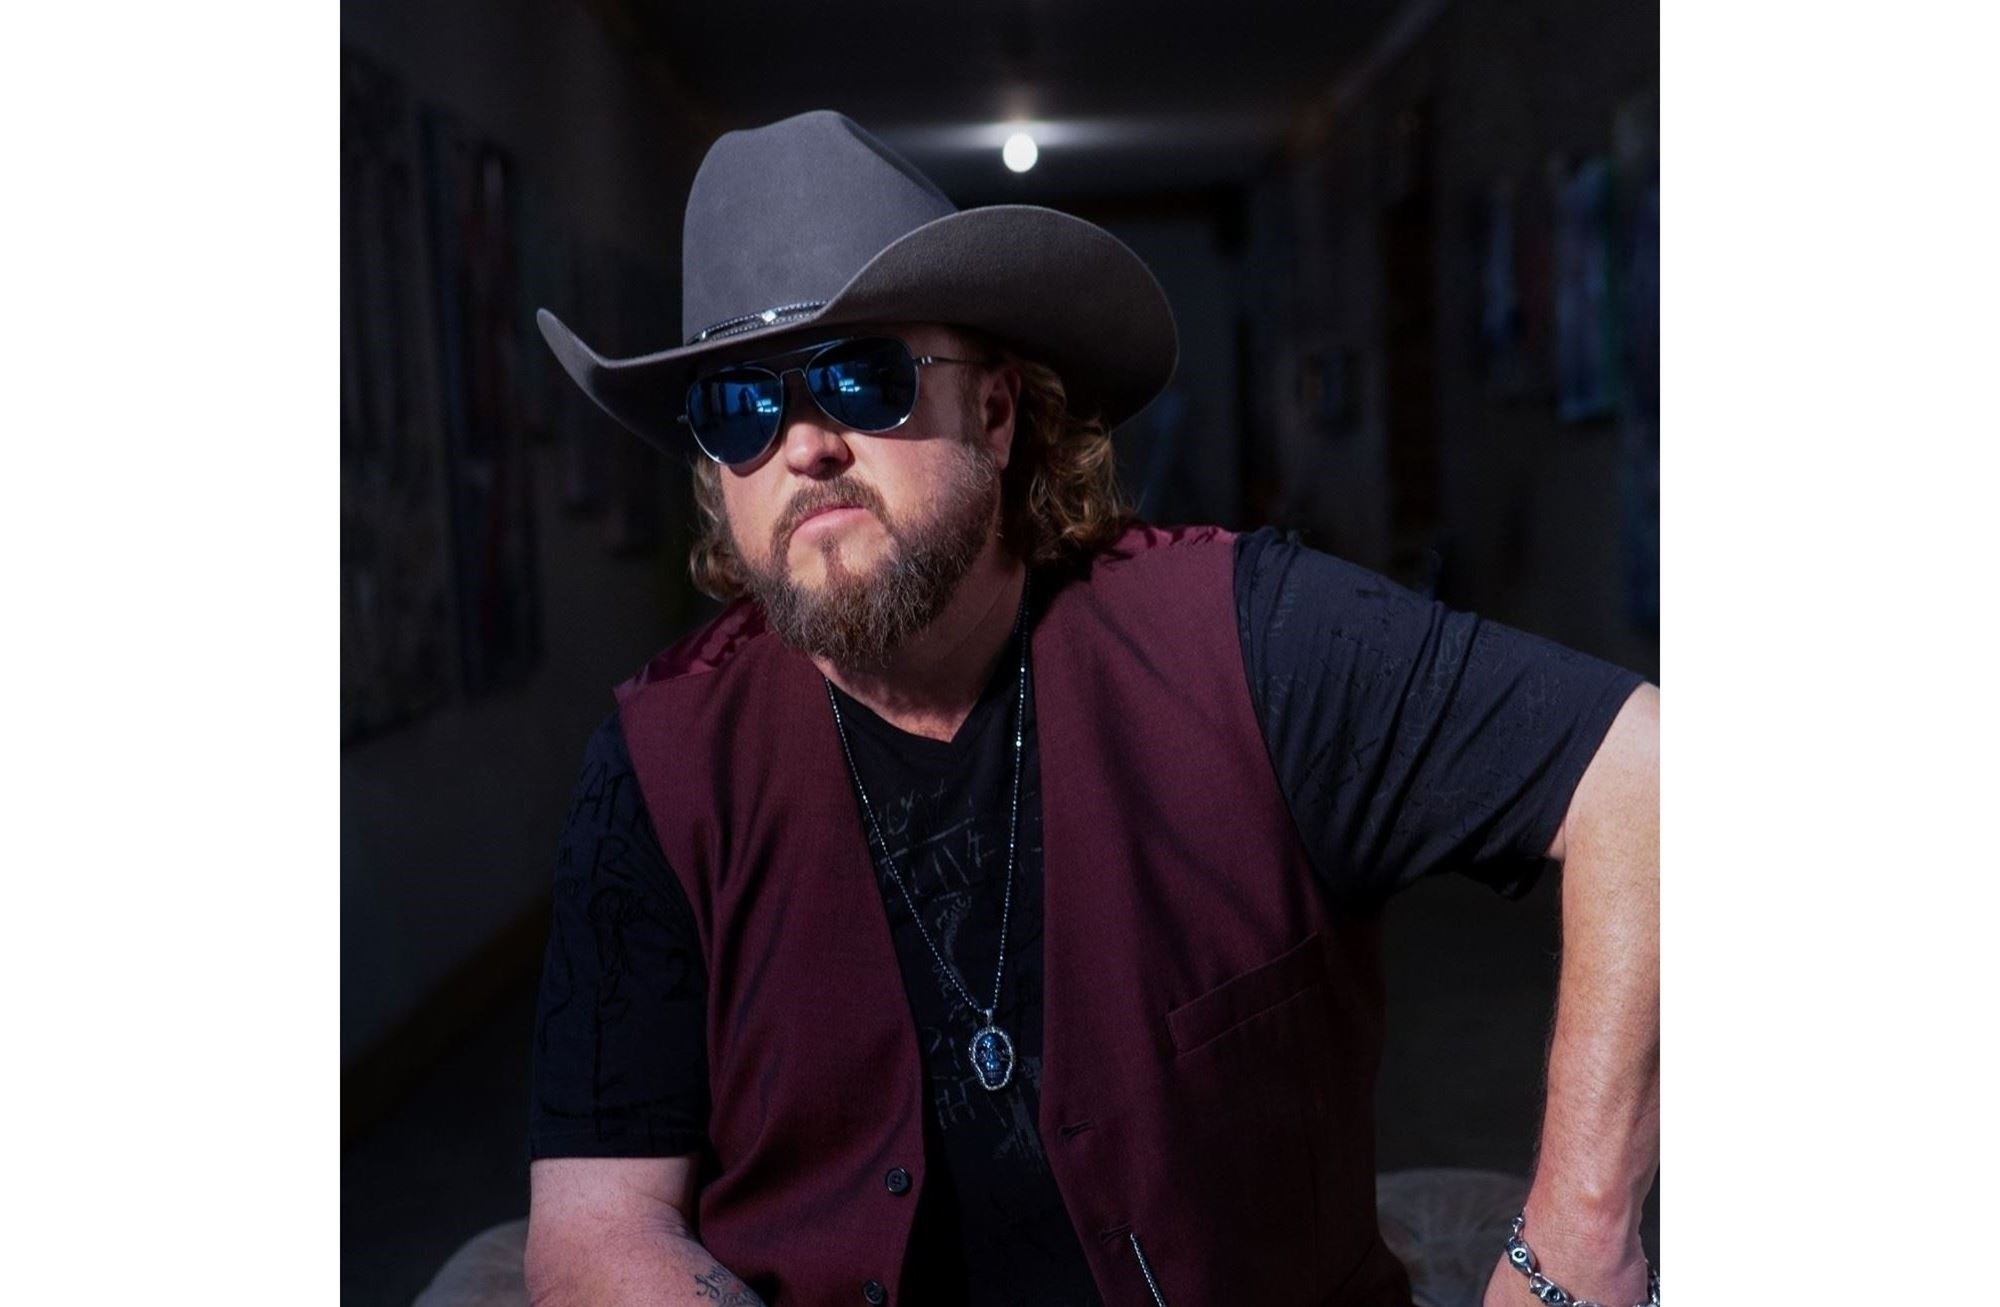 Photo: Colt Ford wearing cowboy hat and sunglasses